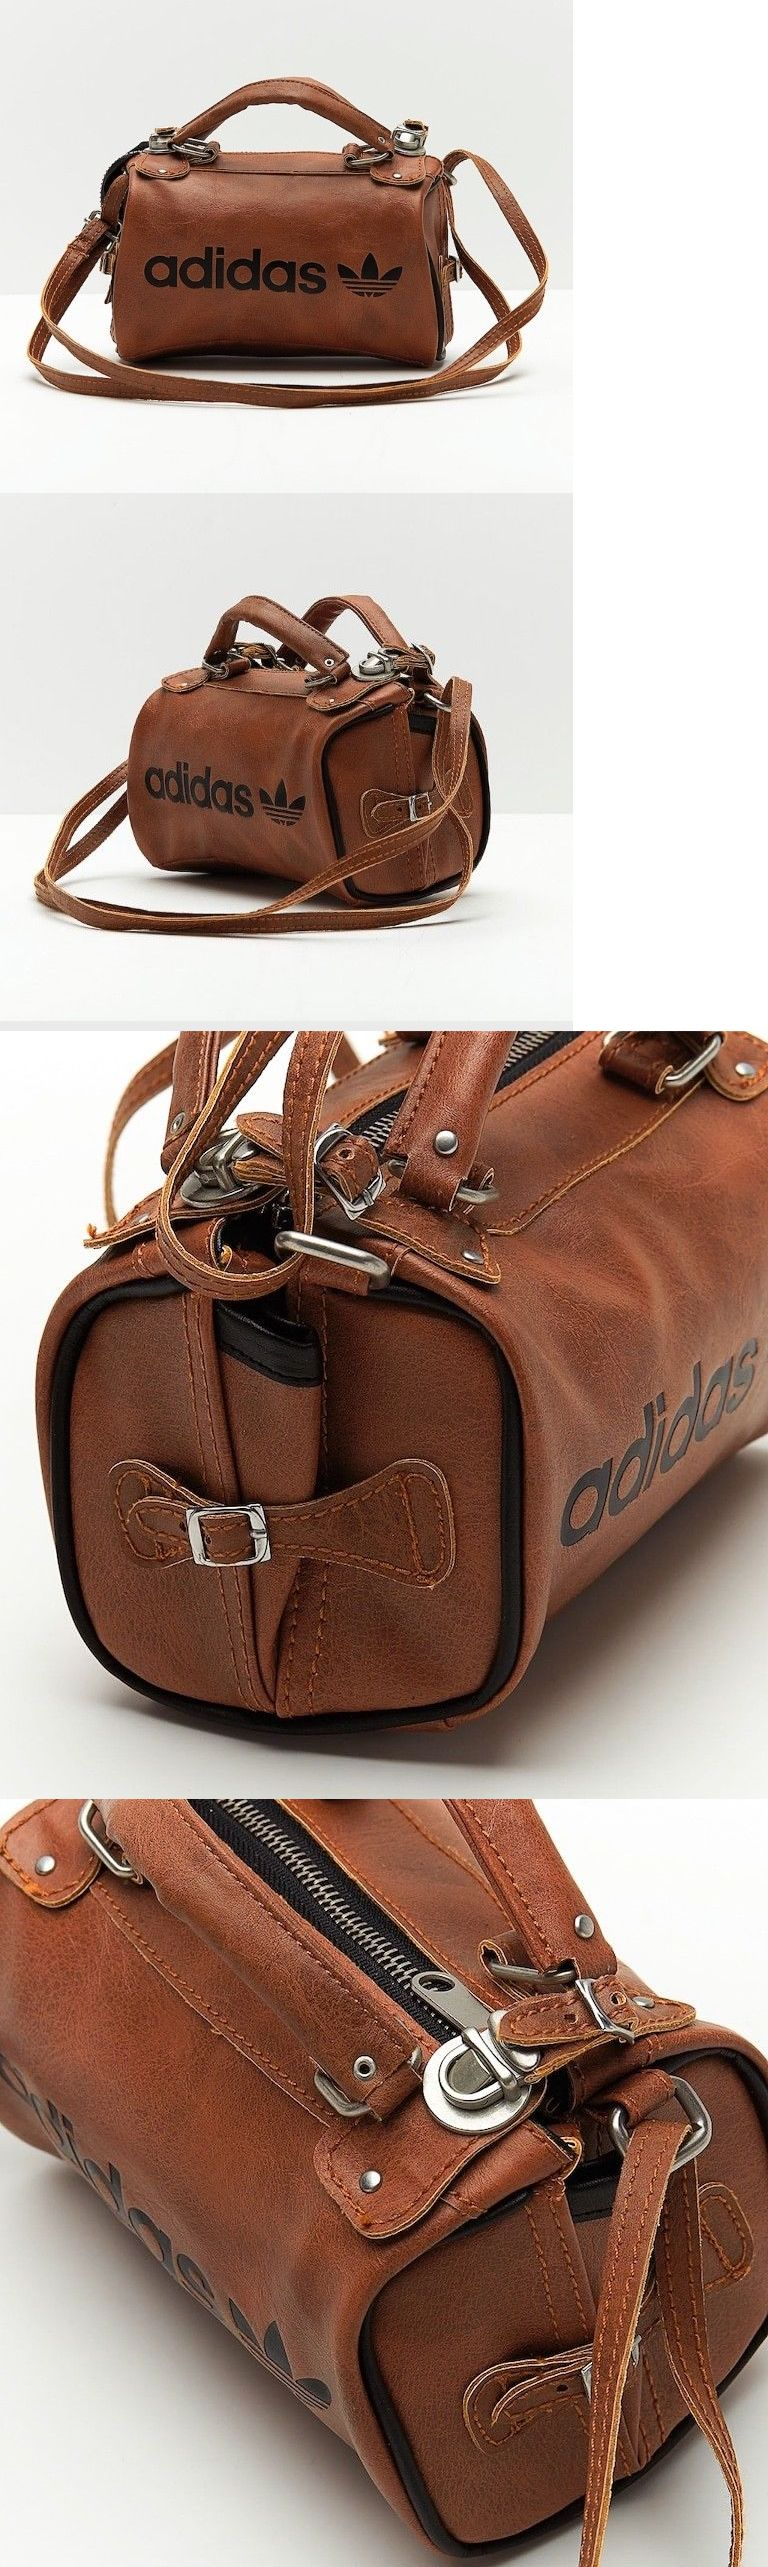 6a77a4397c Bags Handbags and Cases 74962  Adidas Original Arch Bag Pu Leather Faux  Vintage Slingbag Brown Archived Limited -  BUY IT NOW ONLY   115 on  eBay   handbags ...